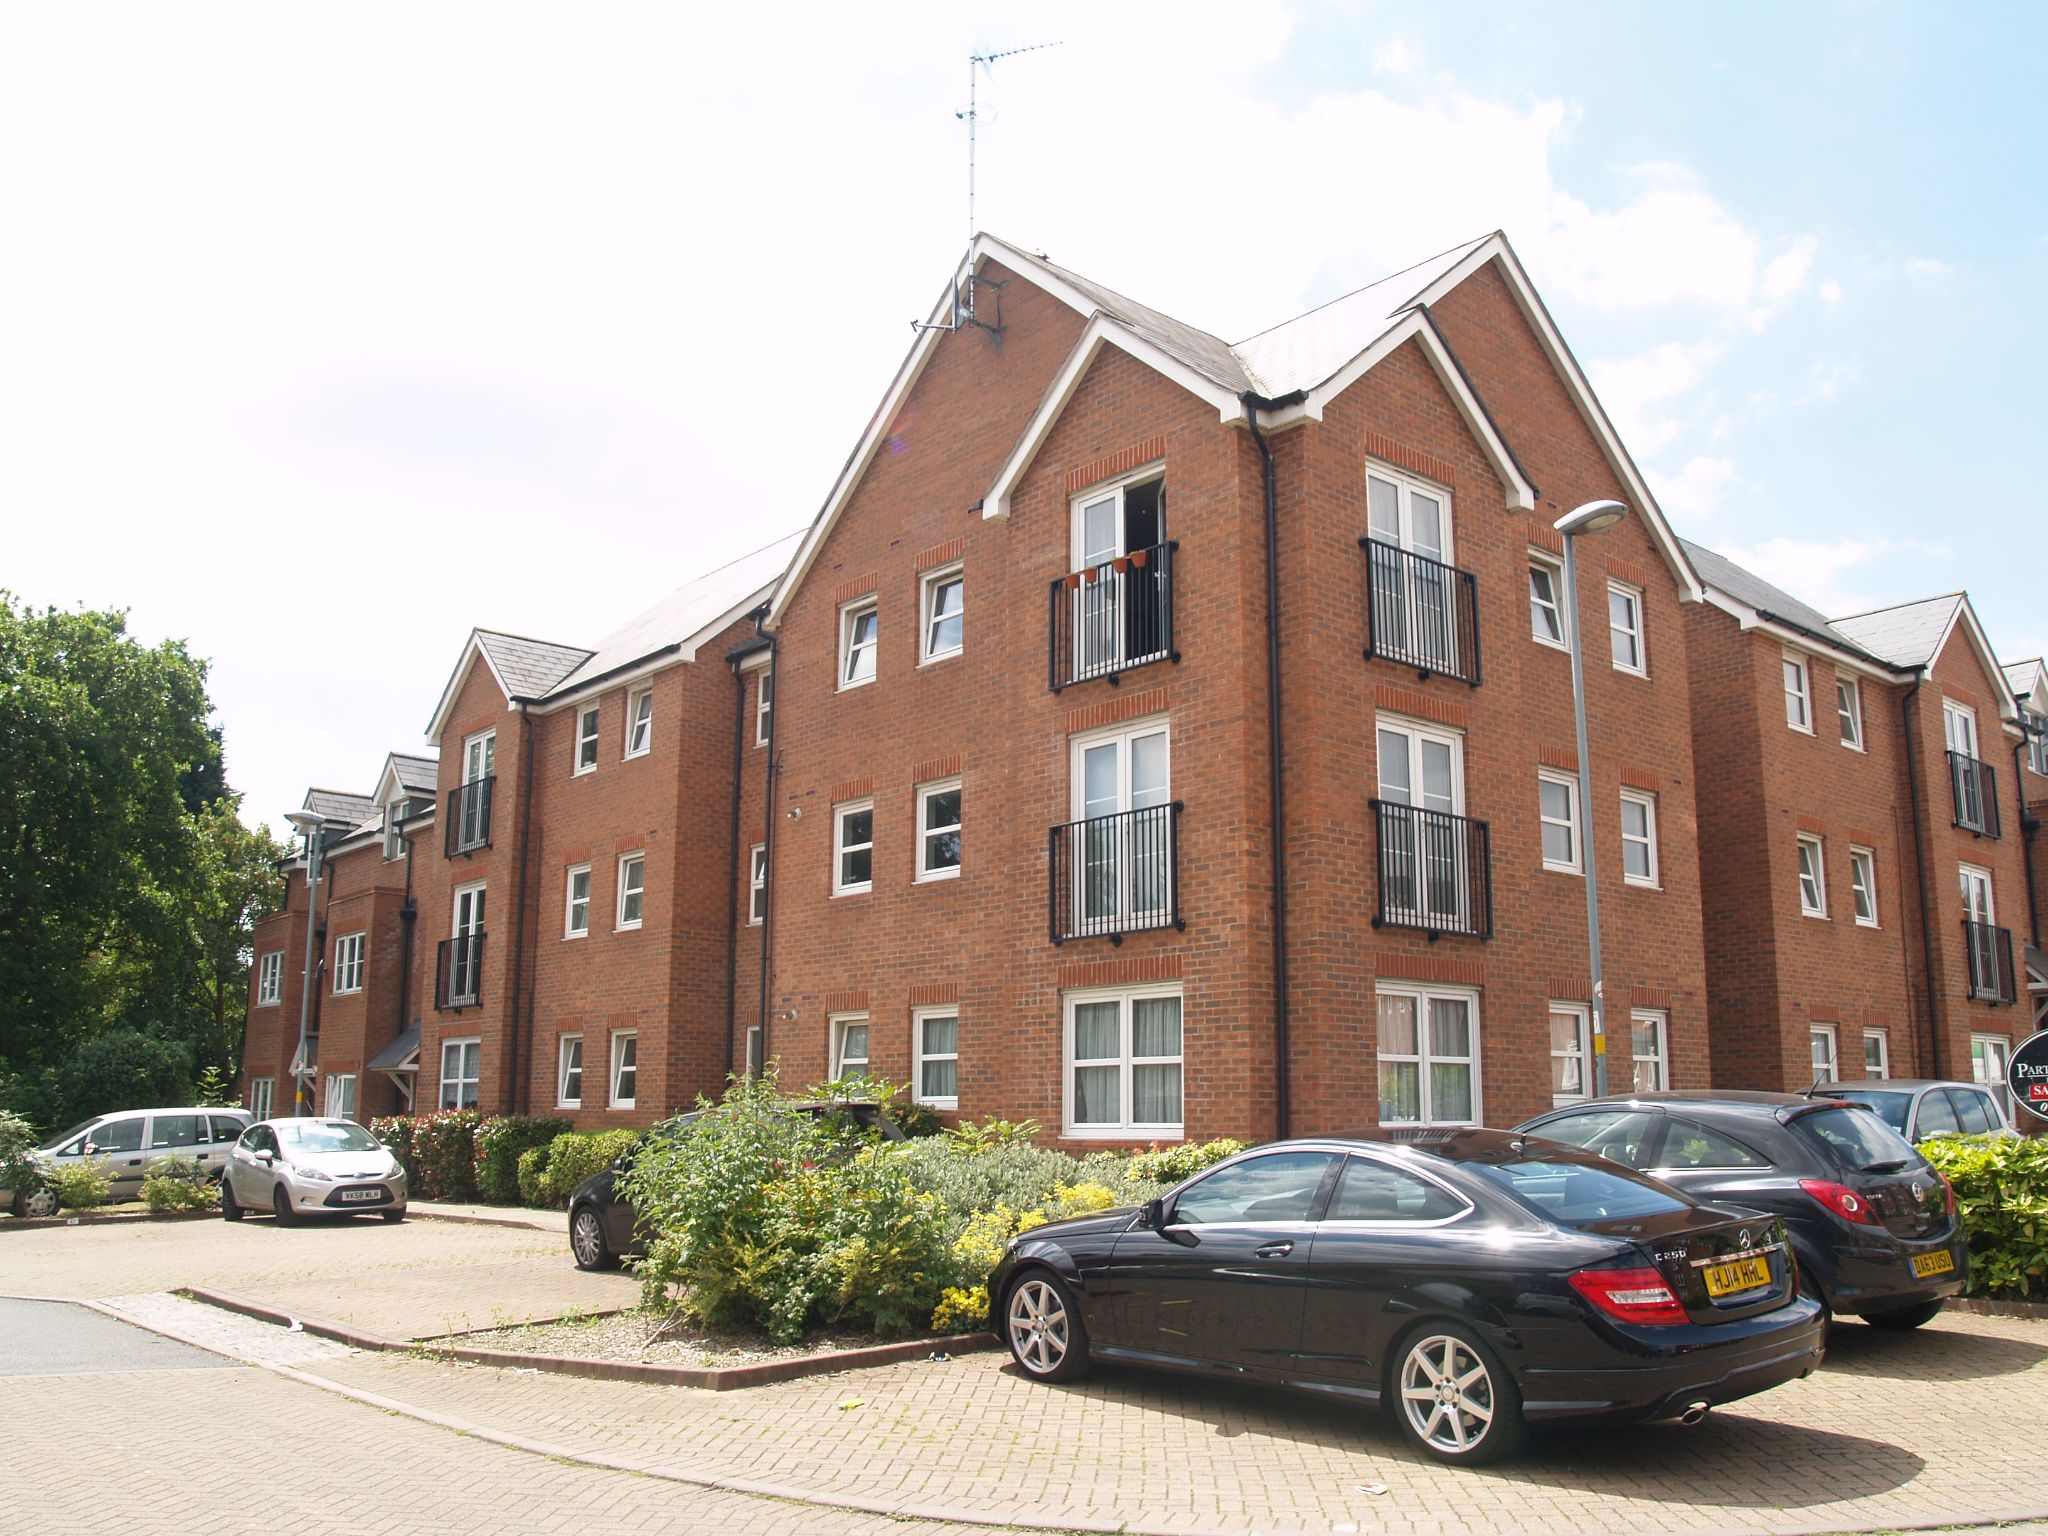 2 bedroom apartment flat/apartment For Sale in Birmingham - Property photograph.